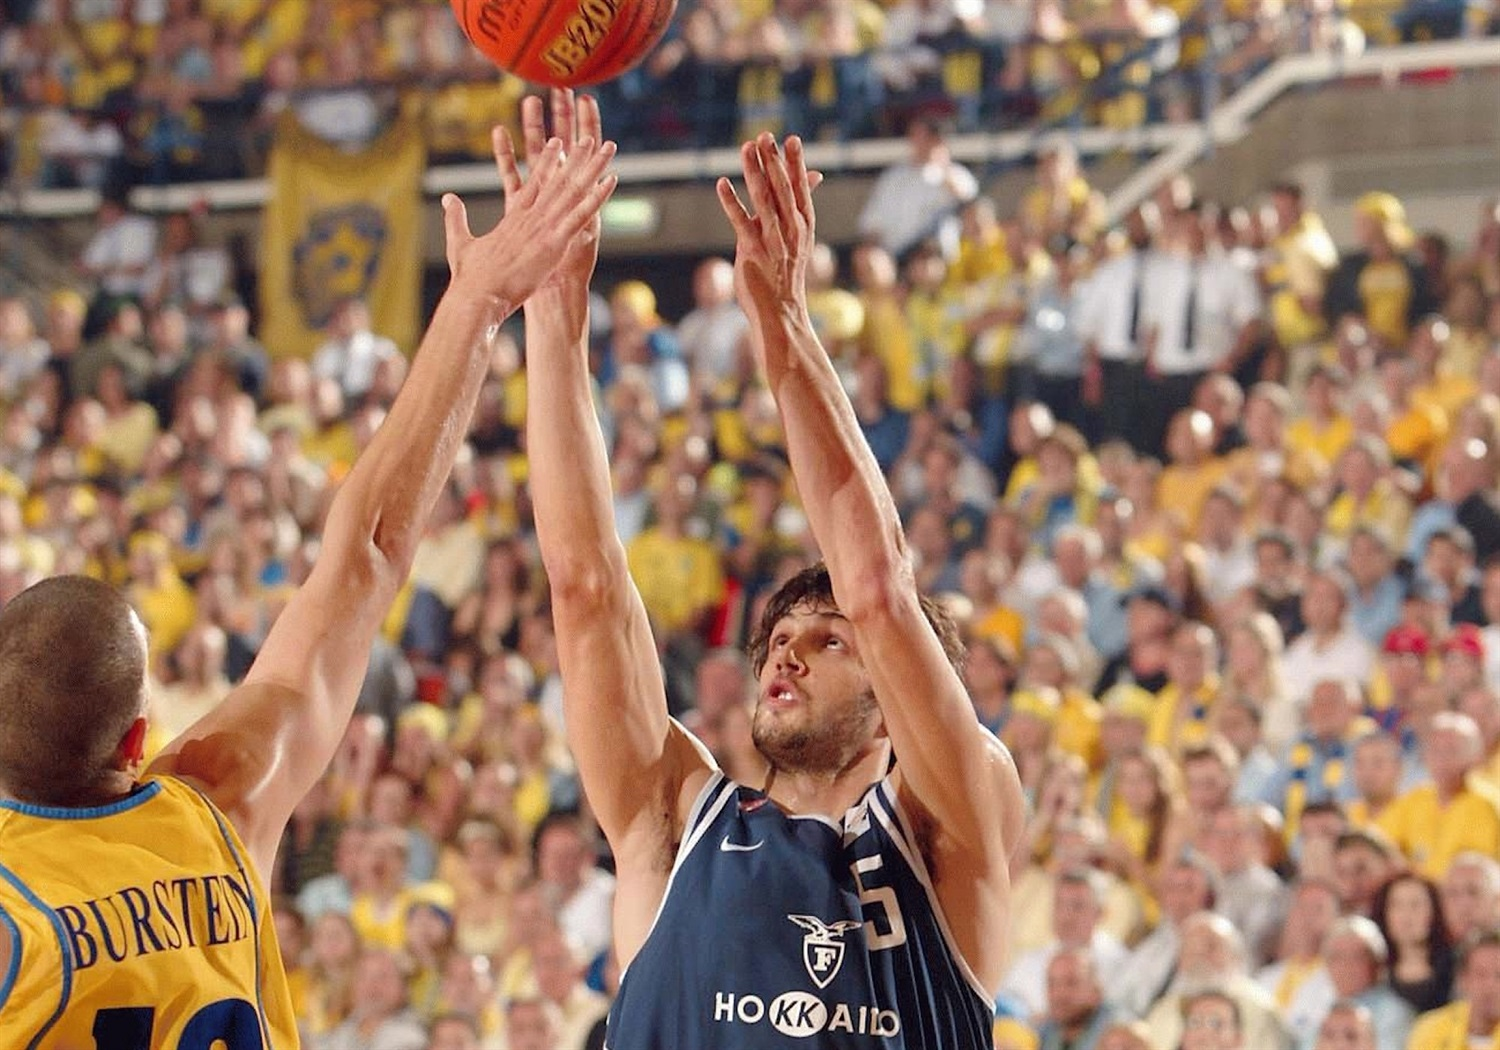 Gianluca Basile - Skipper Bologna - Final Four Maccabi 2004 - EB03